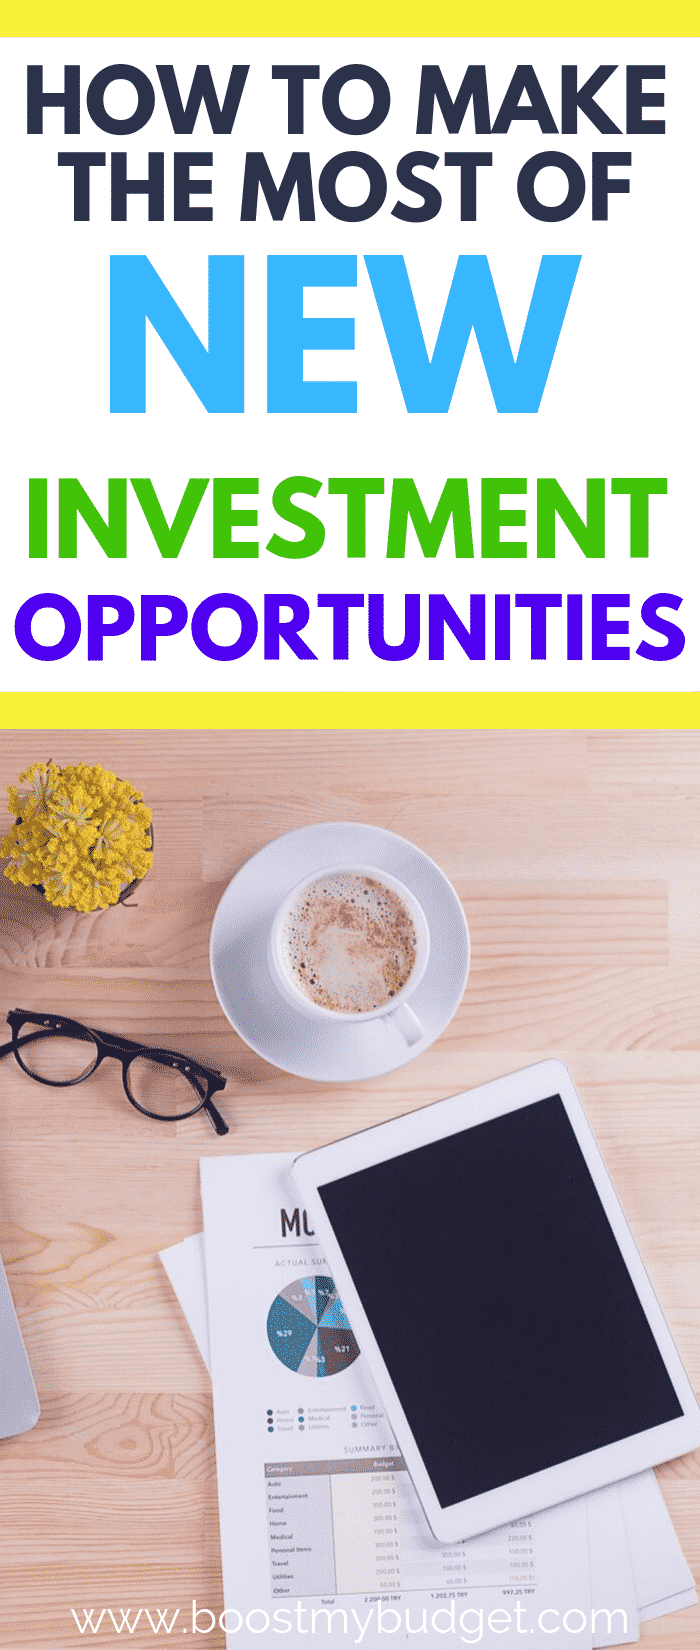 how to make the most from new investment opportunities. Learn the two key rules that helped me make £5000 from one crowdfunding investment platform!